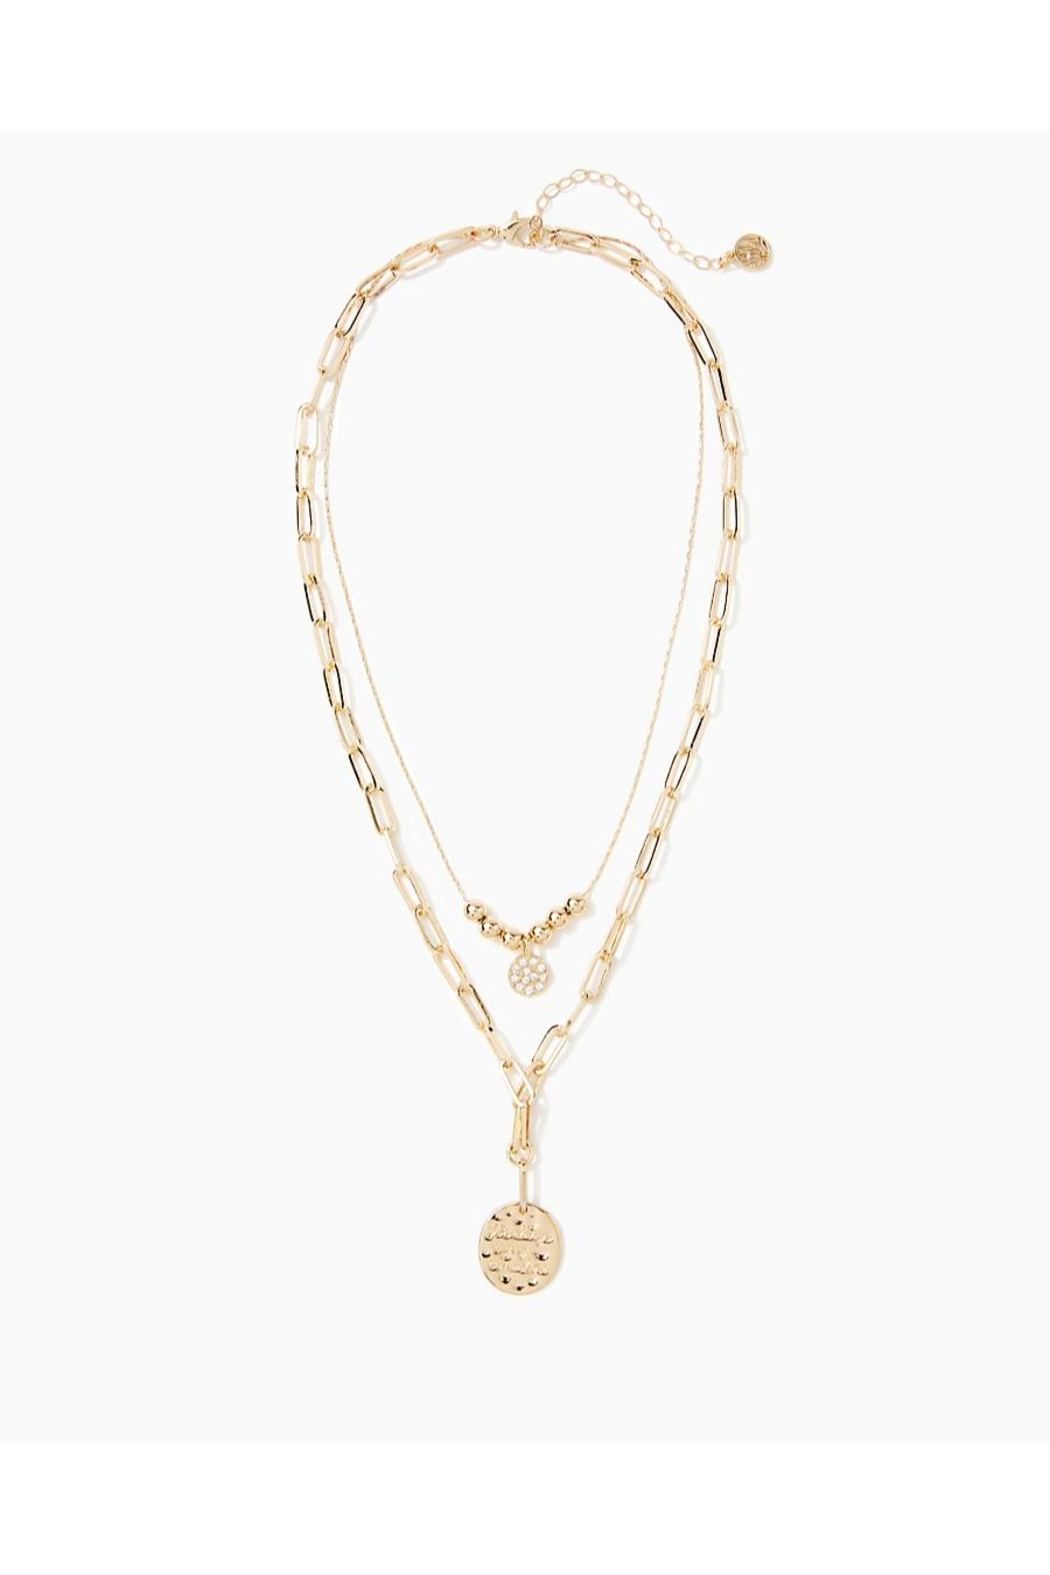 Lilly Pulitzer Island Hopping Necklace - Main Image